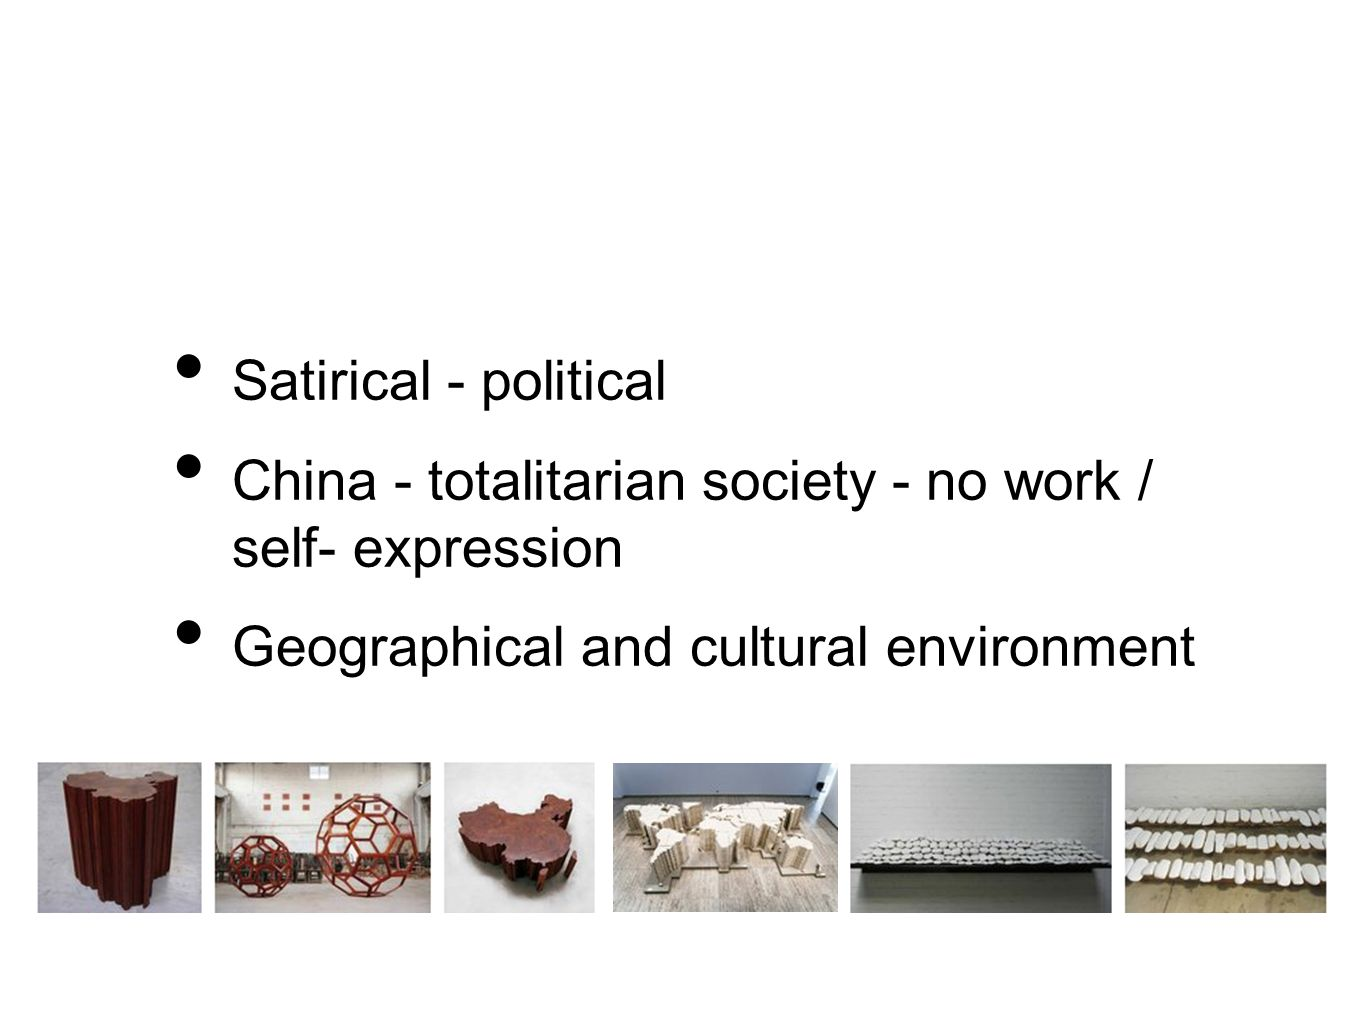 Satirical - political China - totalitarian society - no work / self- expression Geographical and cultural environment